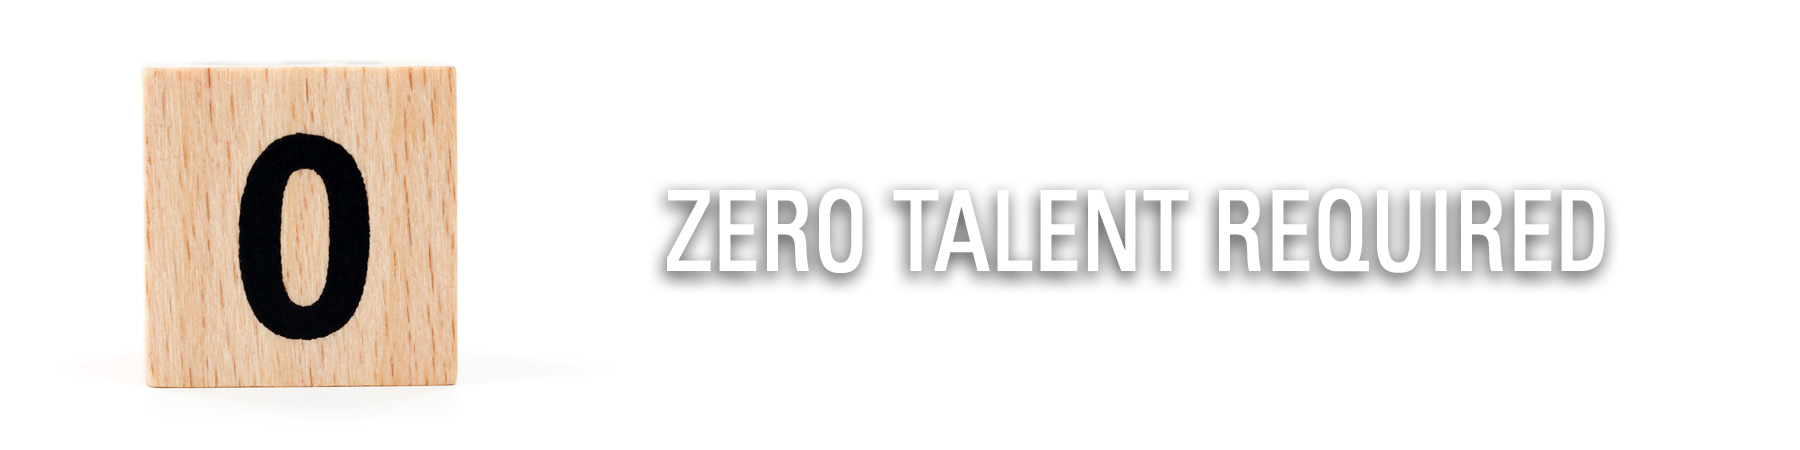 Zero Talent Required